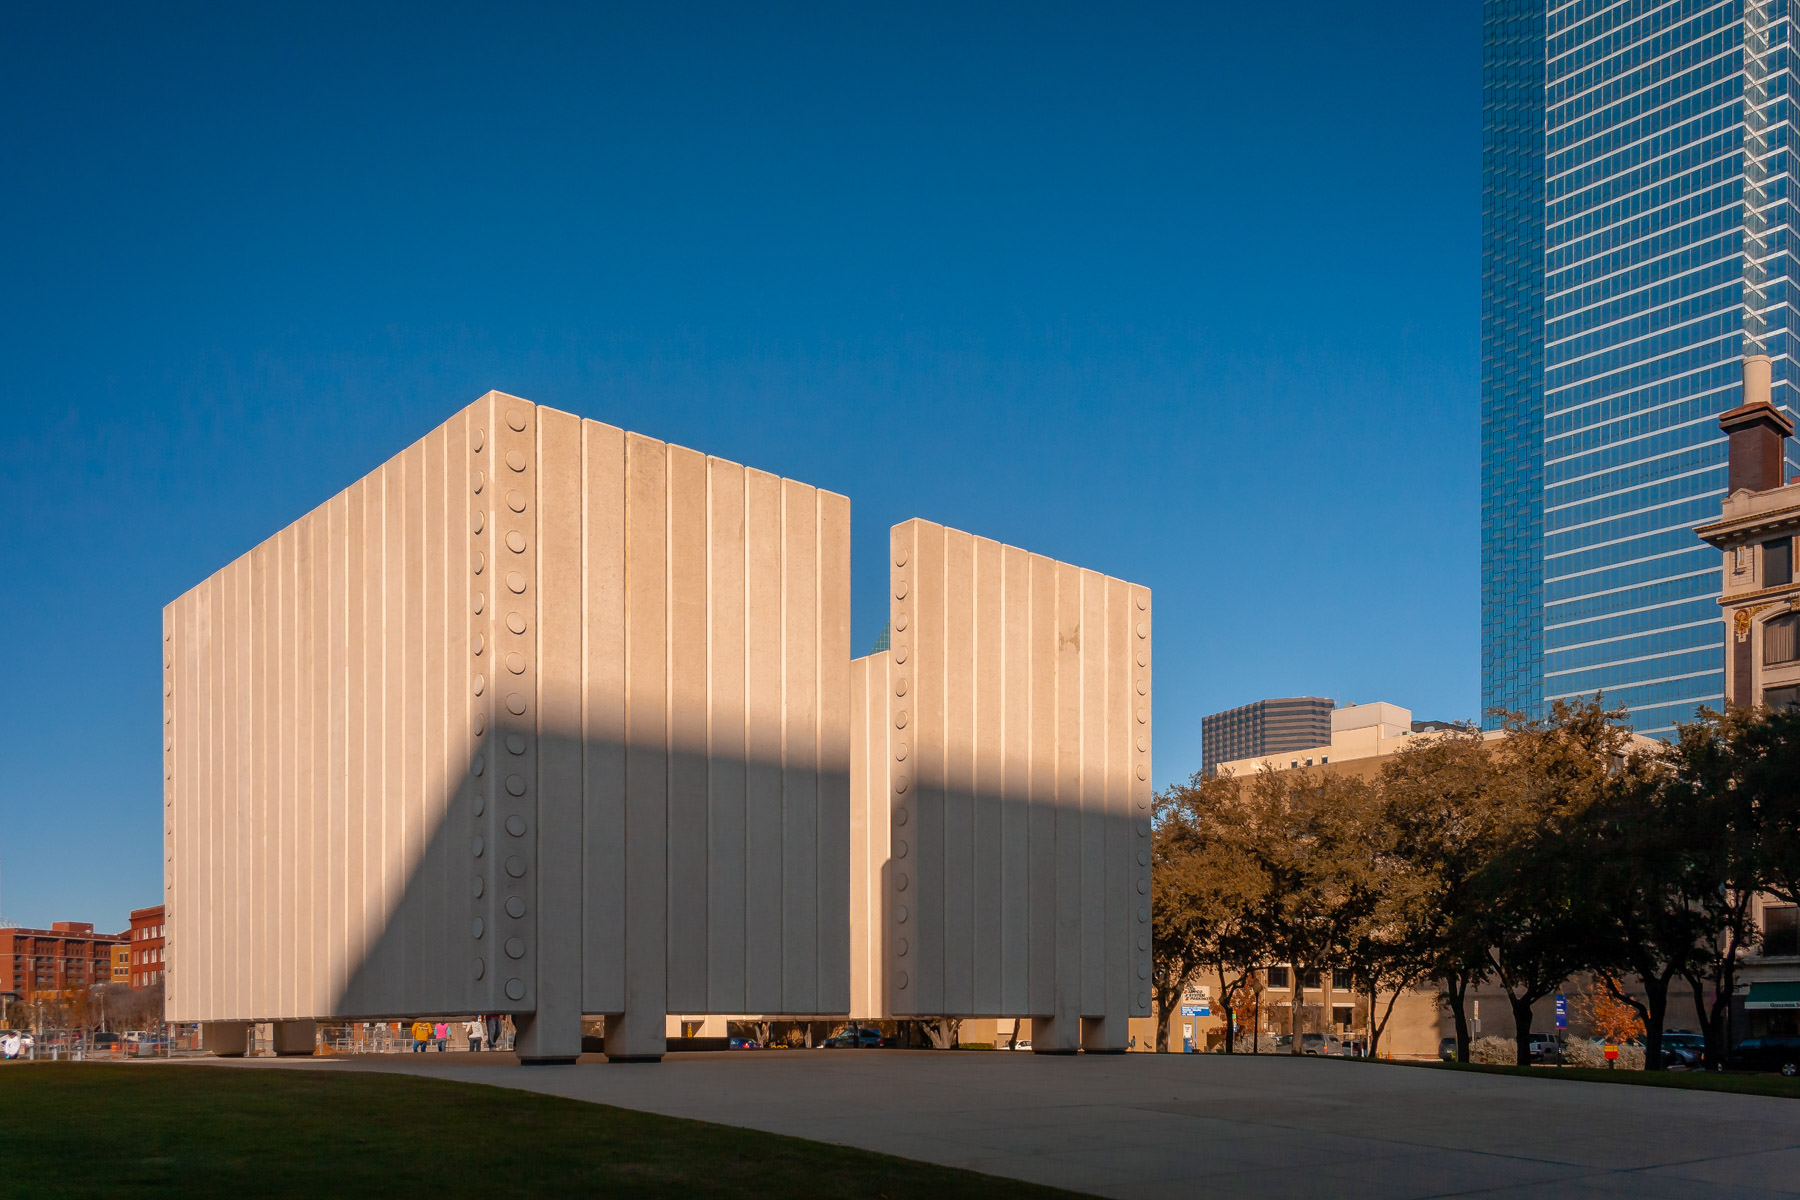 Dallas'—the site of his assassination—memorial to President John F. Kennedy is a cenotaph designed by architect Philip Johnson.